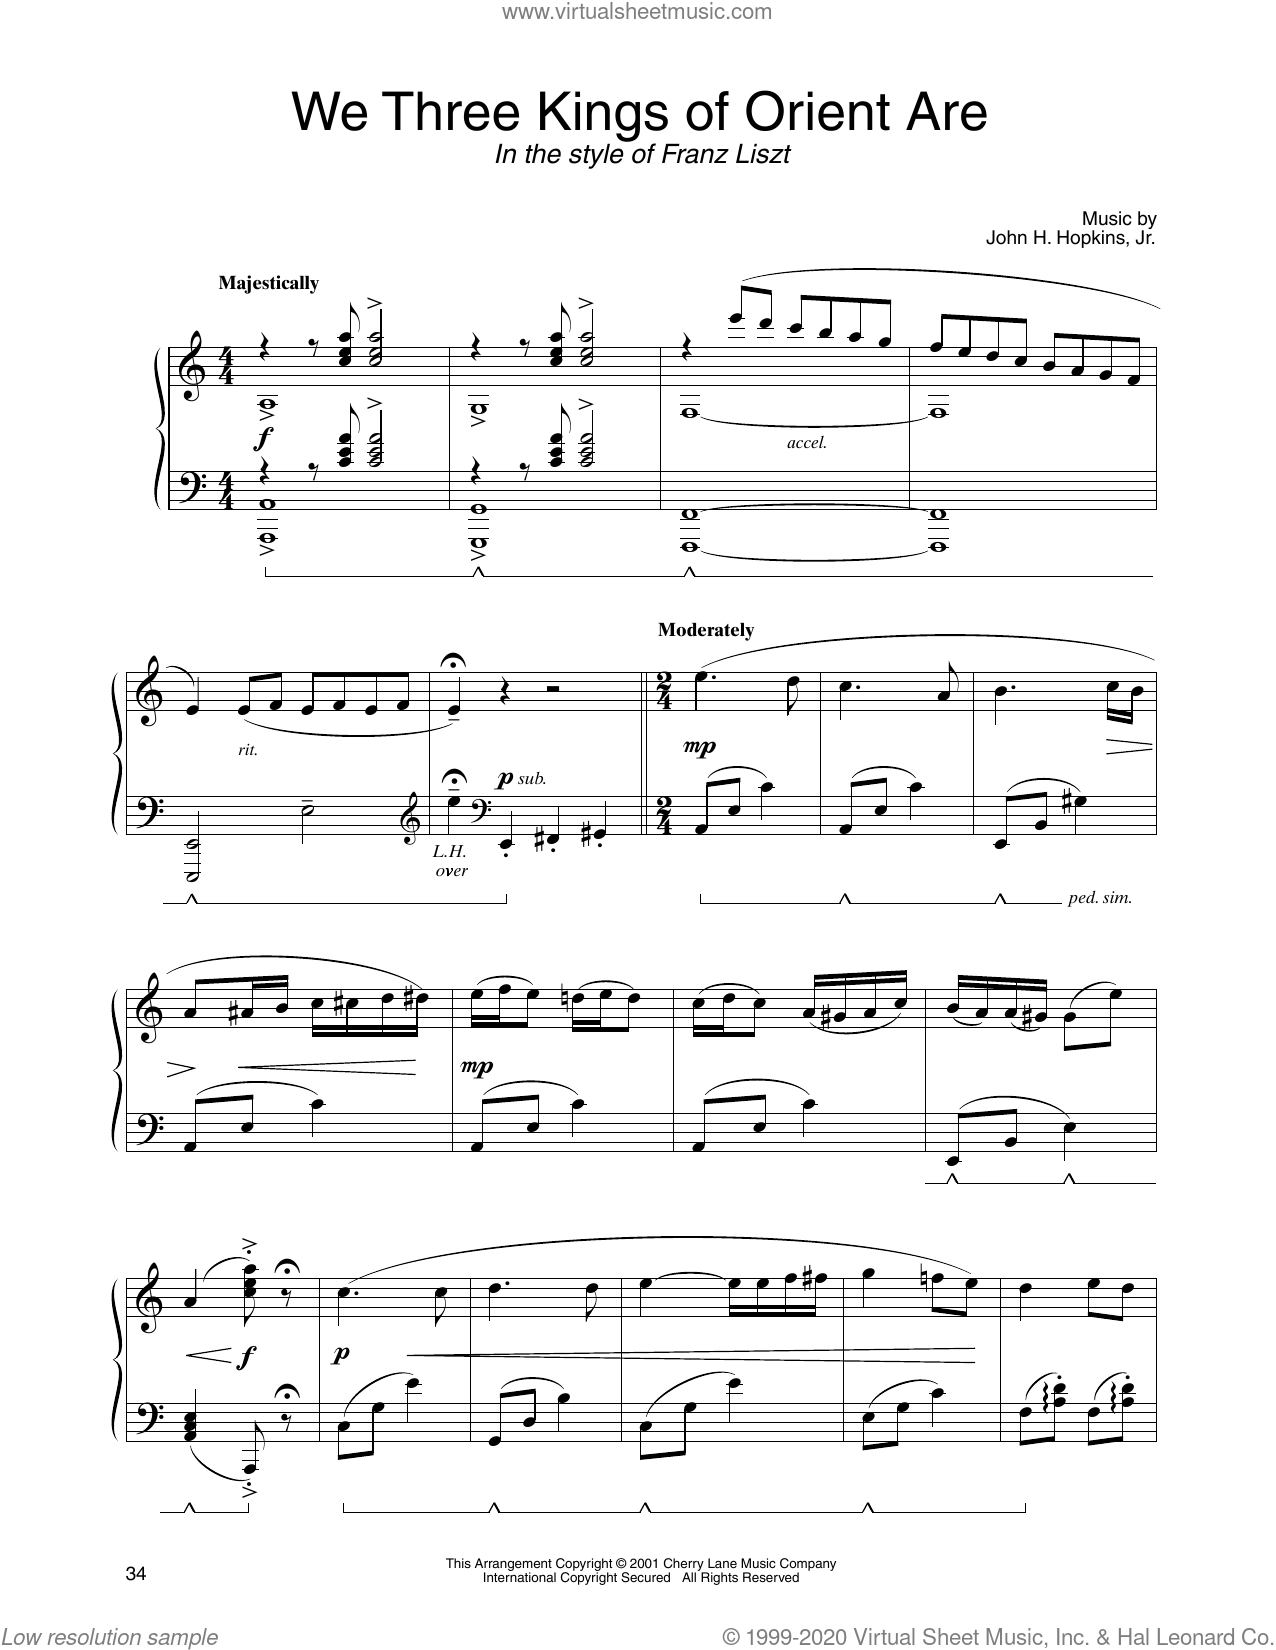 We Three Kings Of Orient Are (in the style of Franz Liszt) (arr. Carol Klose) sheet music for piano solo by John H. Hopkins, Jr. and Carol Klose, classical score, intermediate skill level